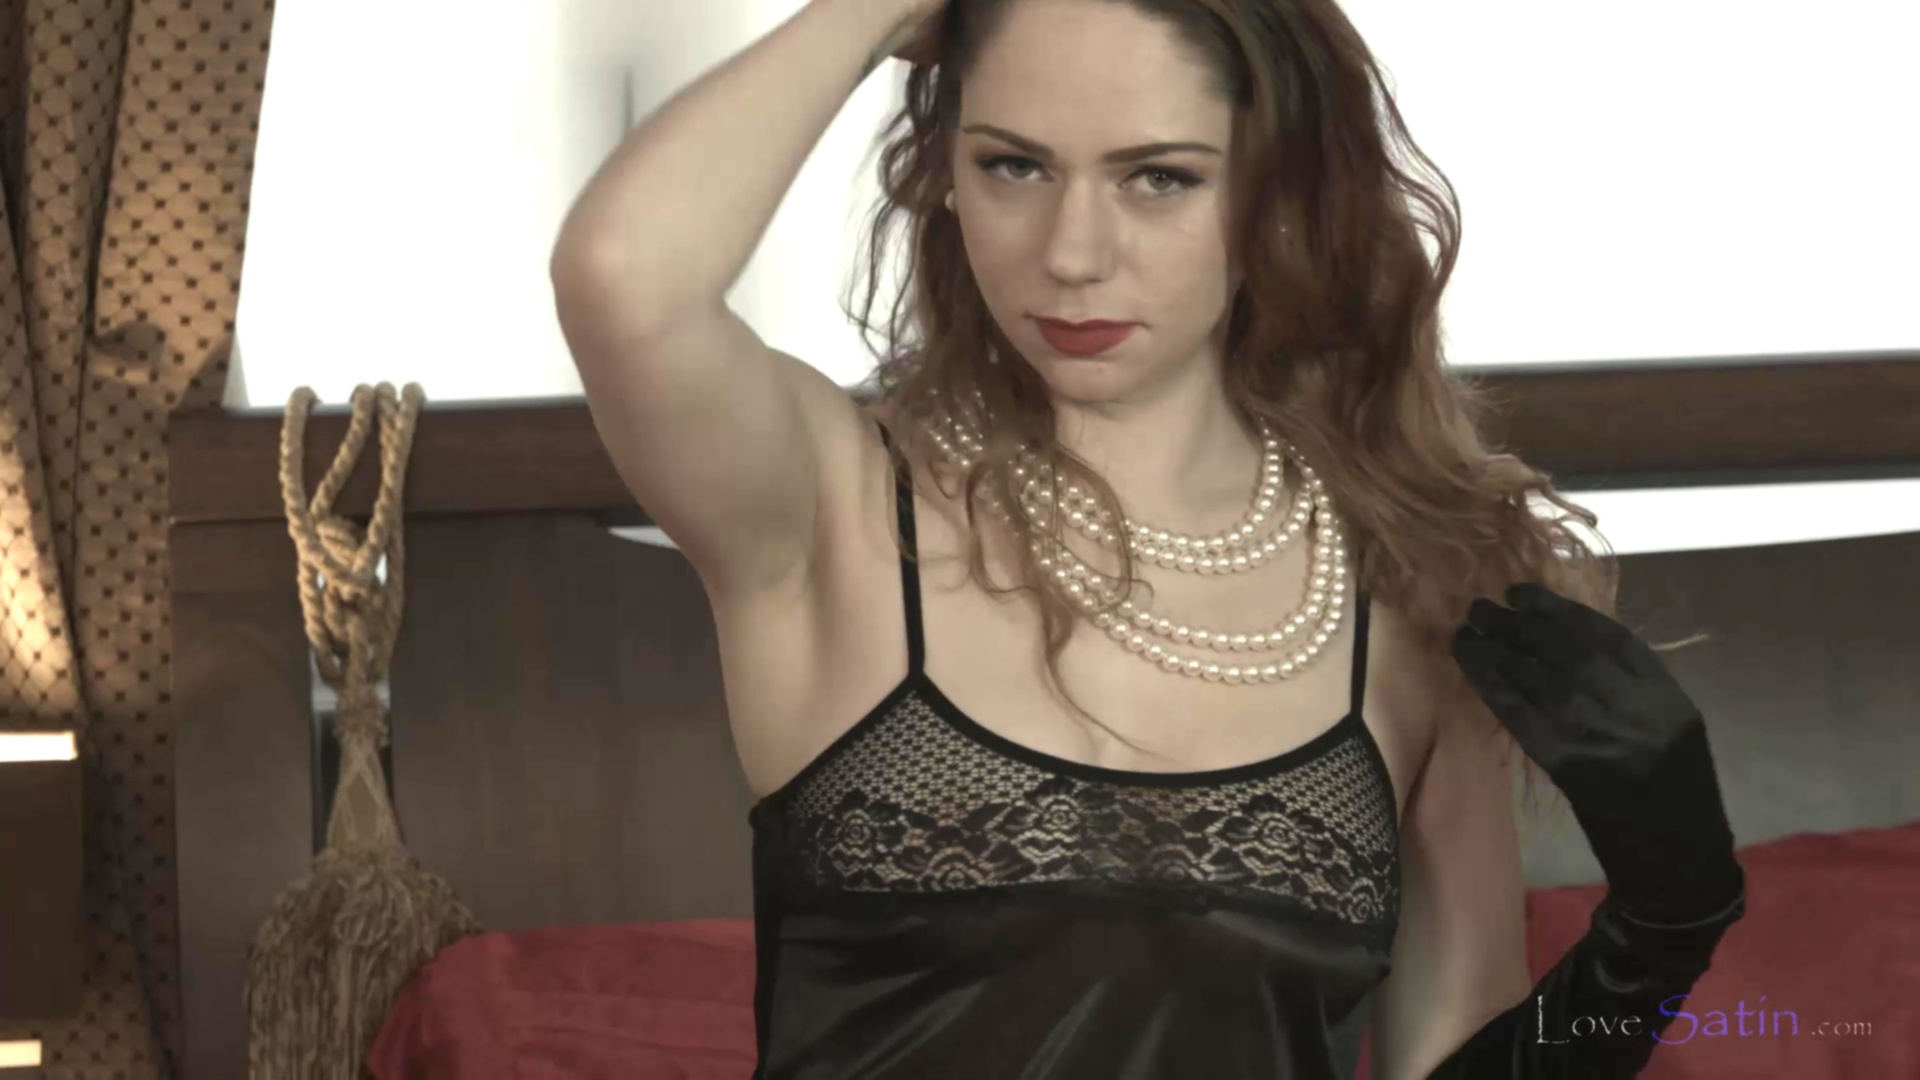 content/Hayley/Hayley-Black-Satin-Lingerie-Video/1.jpg